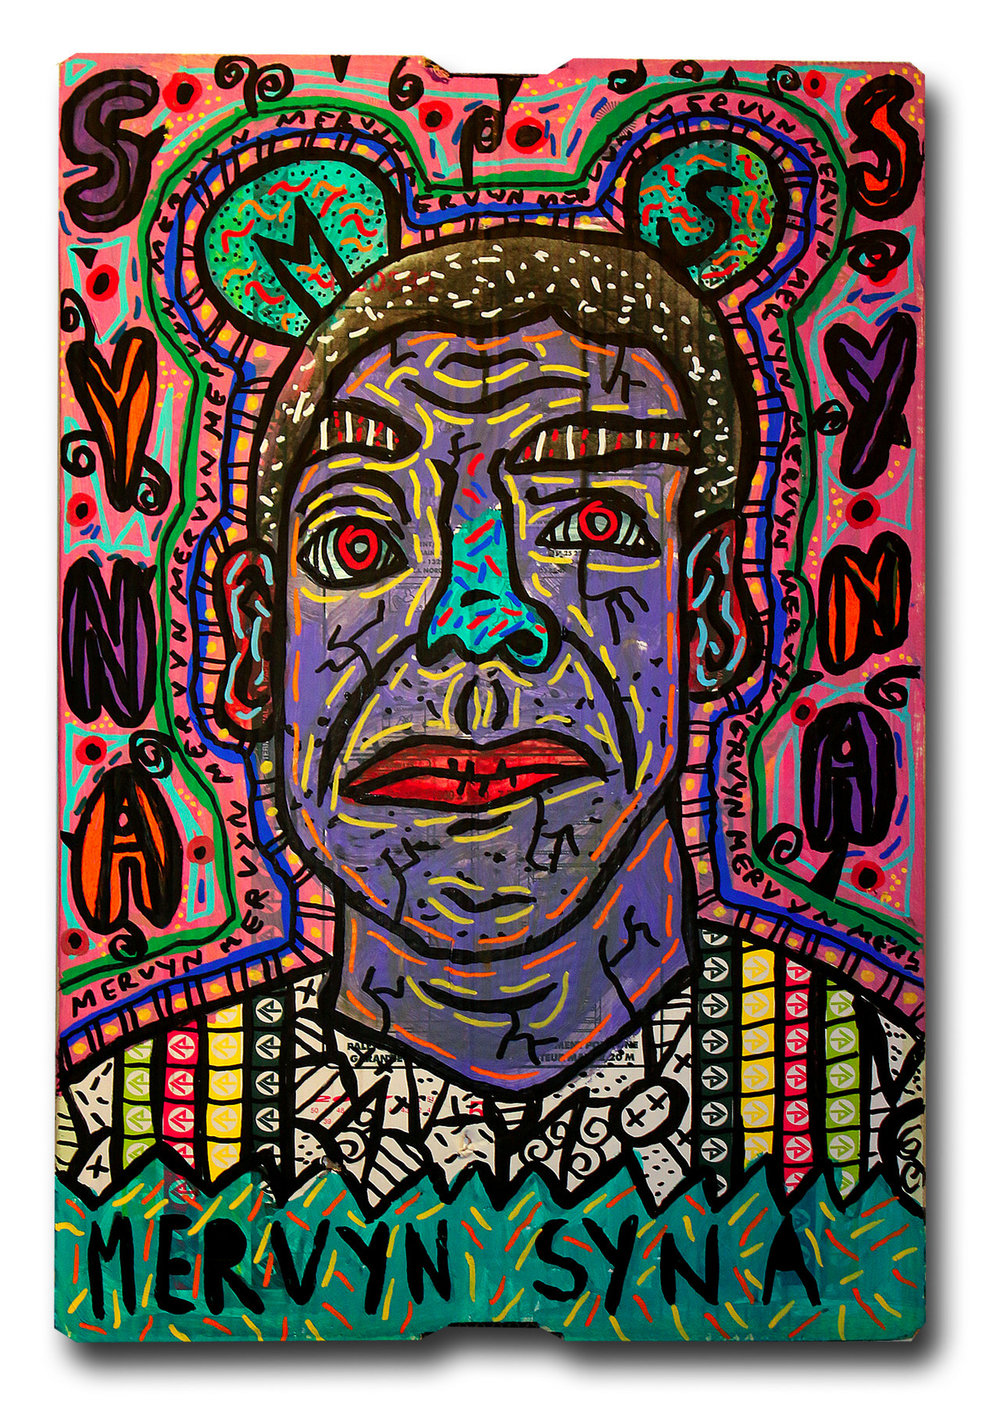 """Mervyn Syna"" , 2018   Acrylic and Posca marker on cardboard, 30 x 70 cm Private Collection"